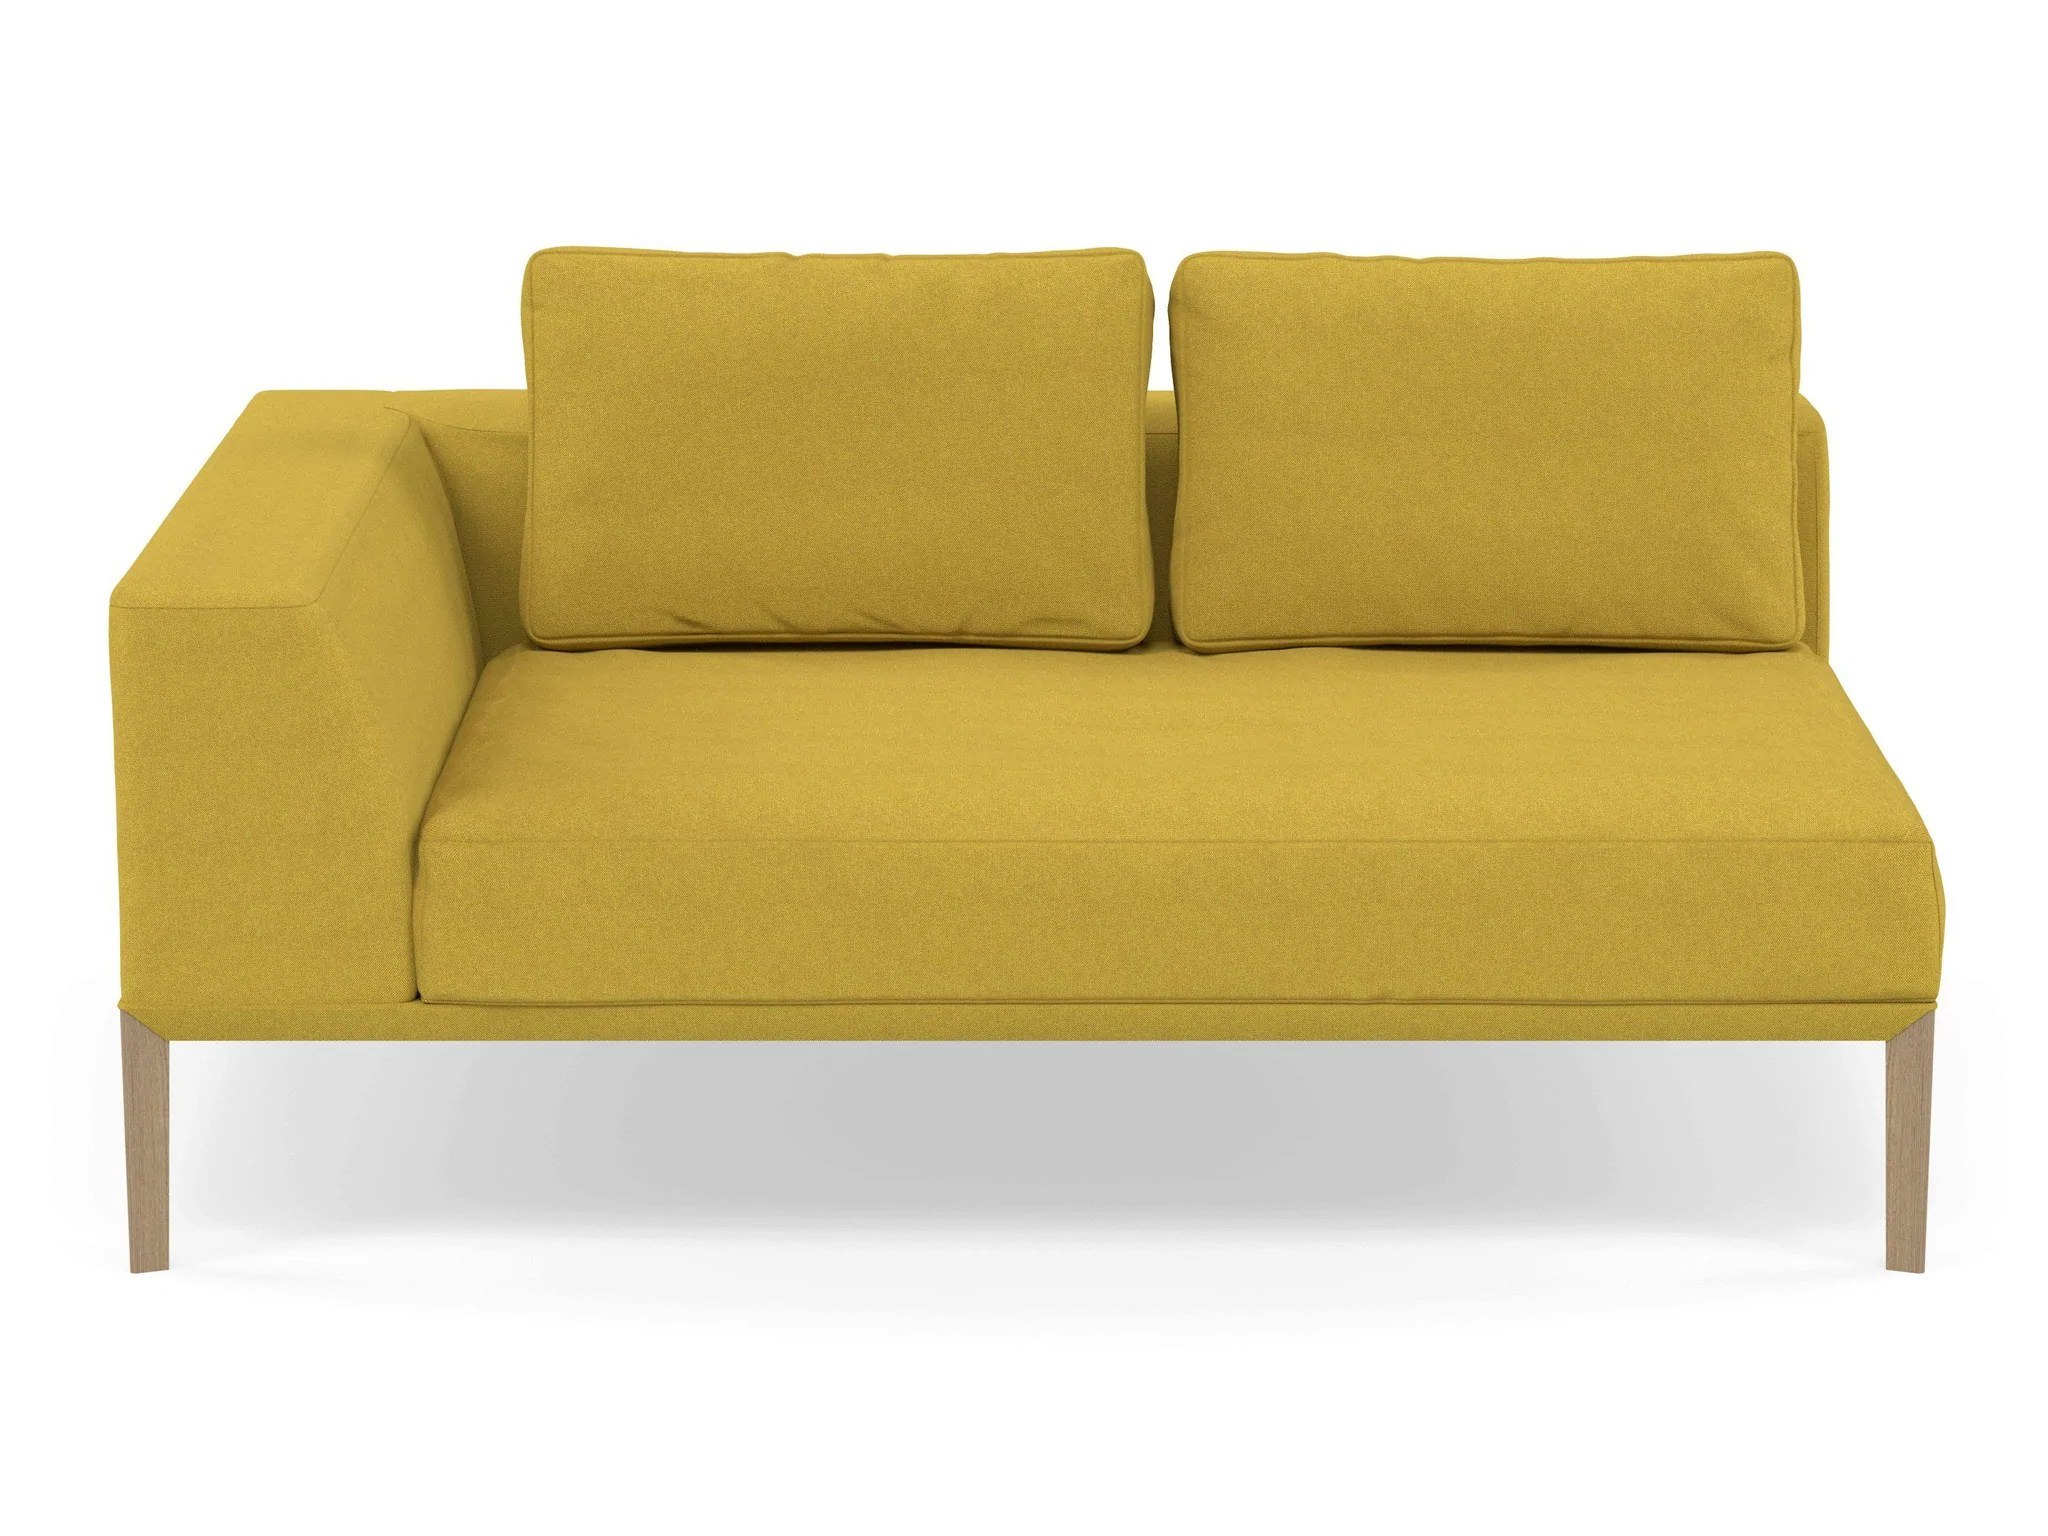 Modern 2 Seater Chaise Lounge Style Sofa With Right Armrest In Vibrant Distinct Designs London Ltd